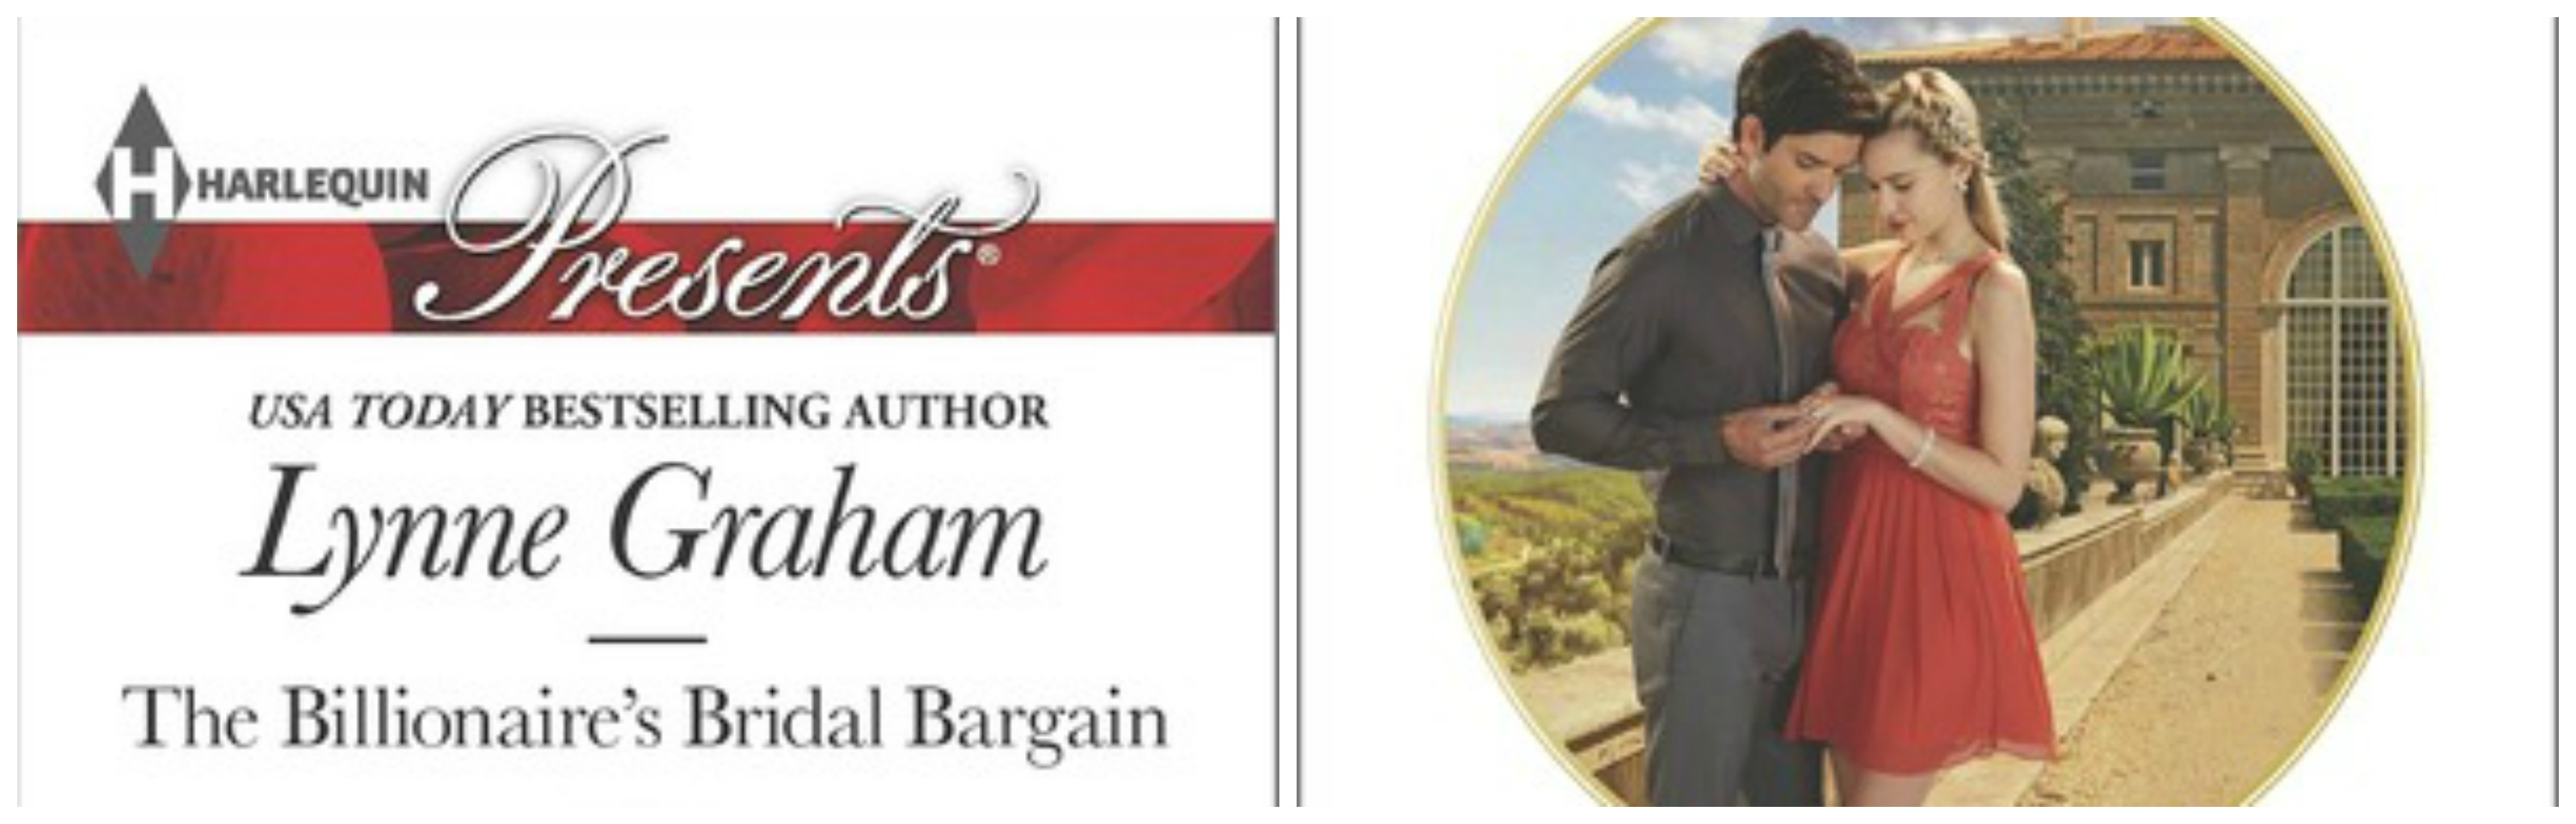 #Giveaway THE BILLIONAIRE'S BRIDAL BARGAIN by LYNNE GRAHAM @lynne__graham  @HarlequinBooks